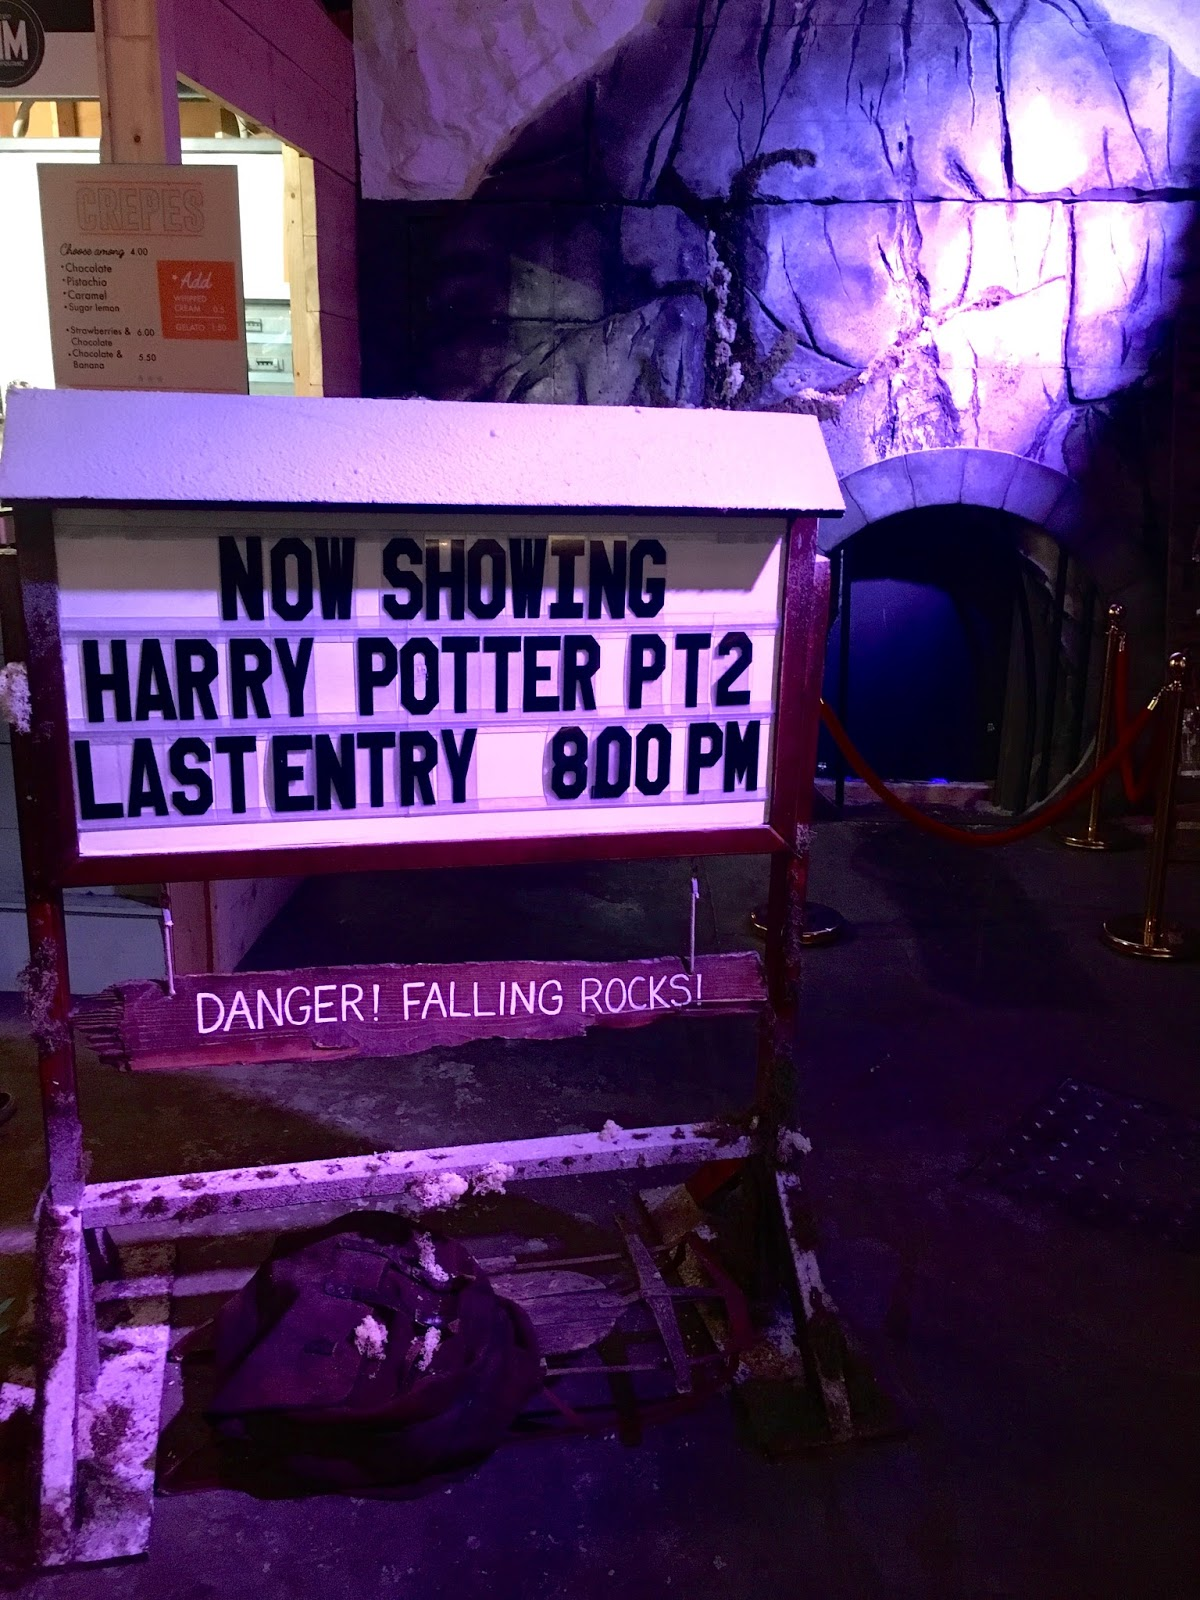 Harry Potter, Backyard Cinema - London